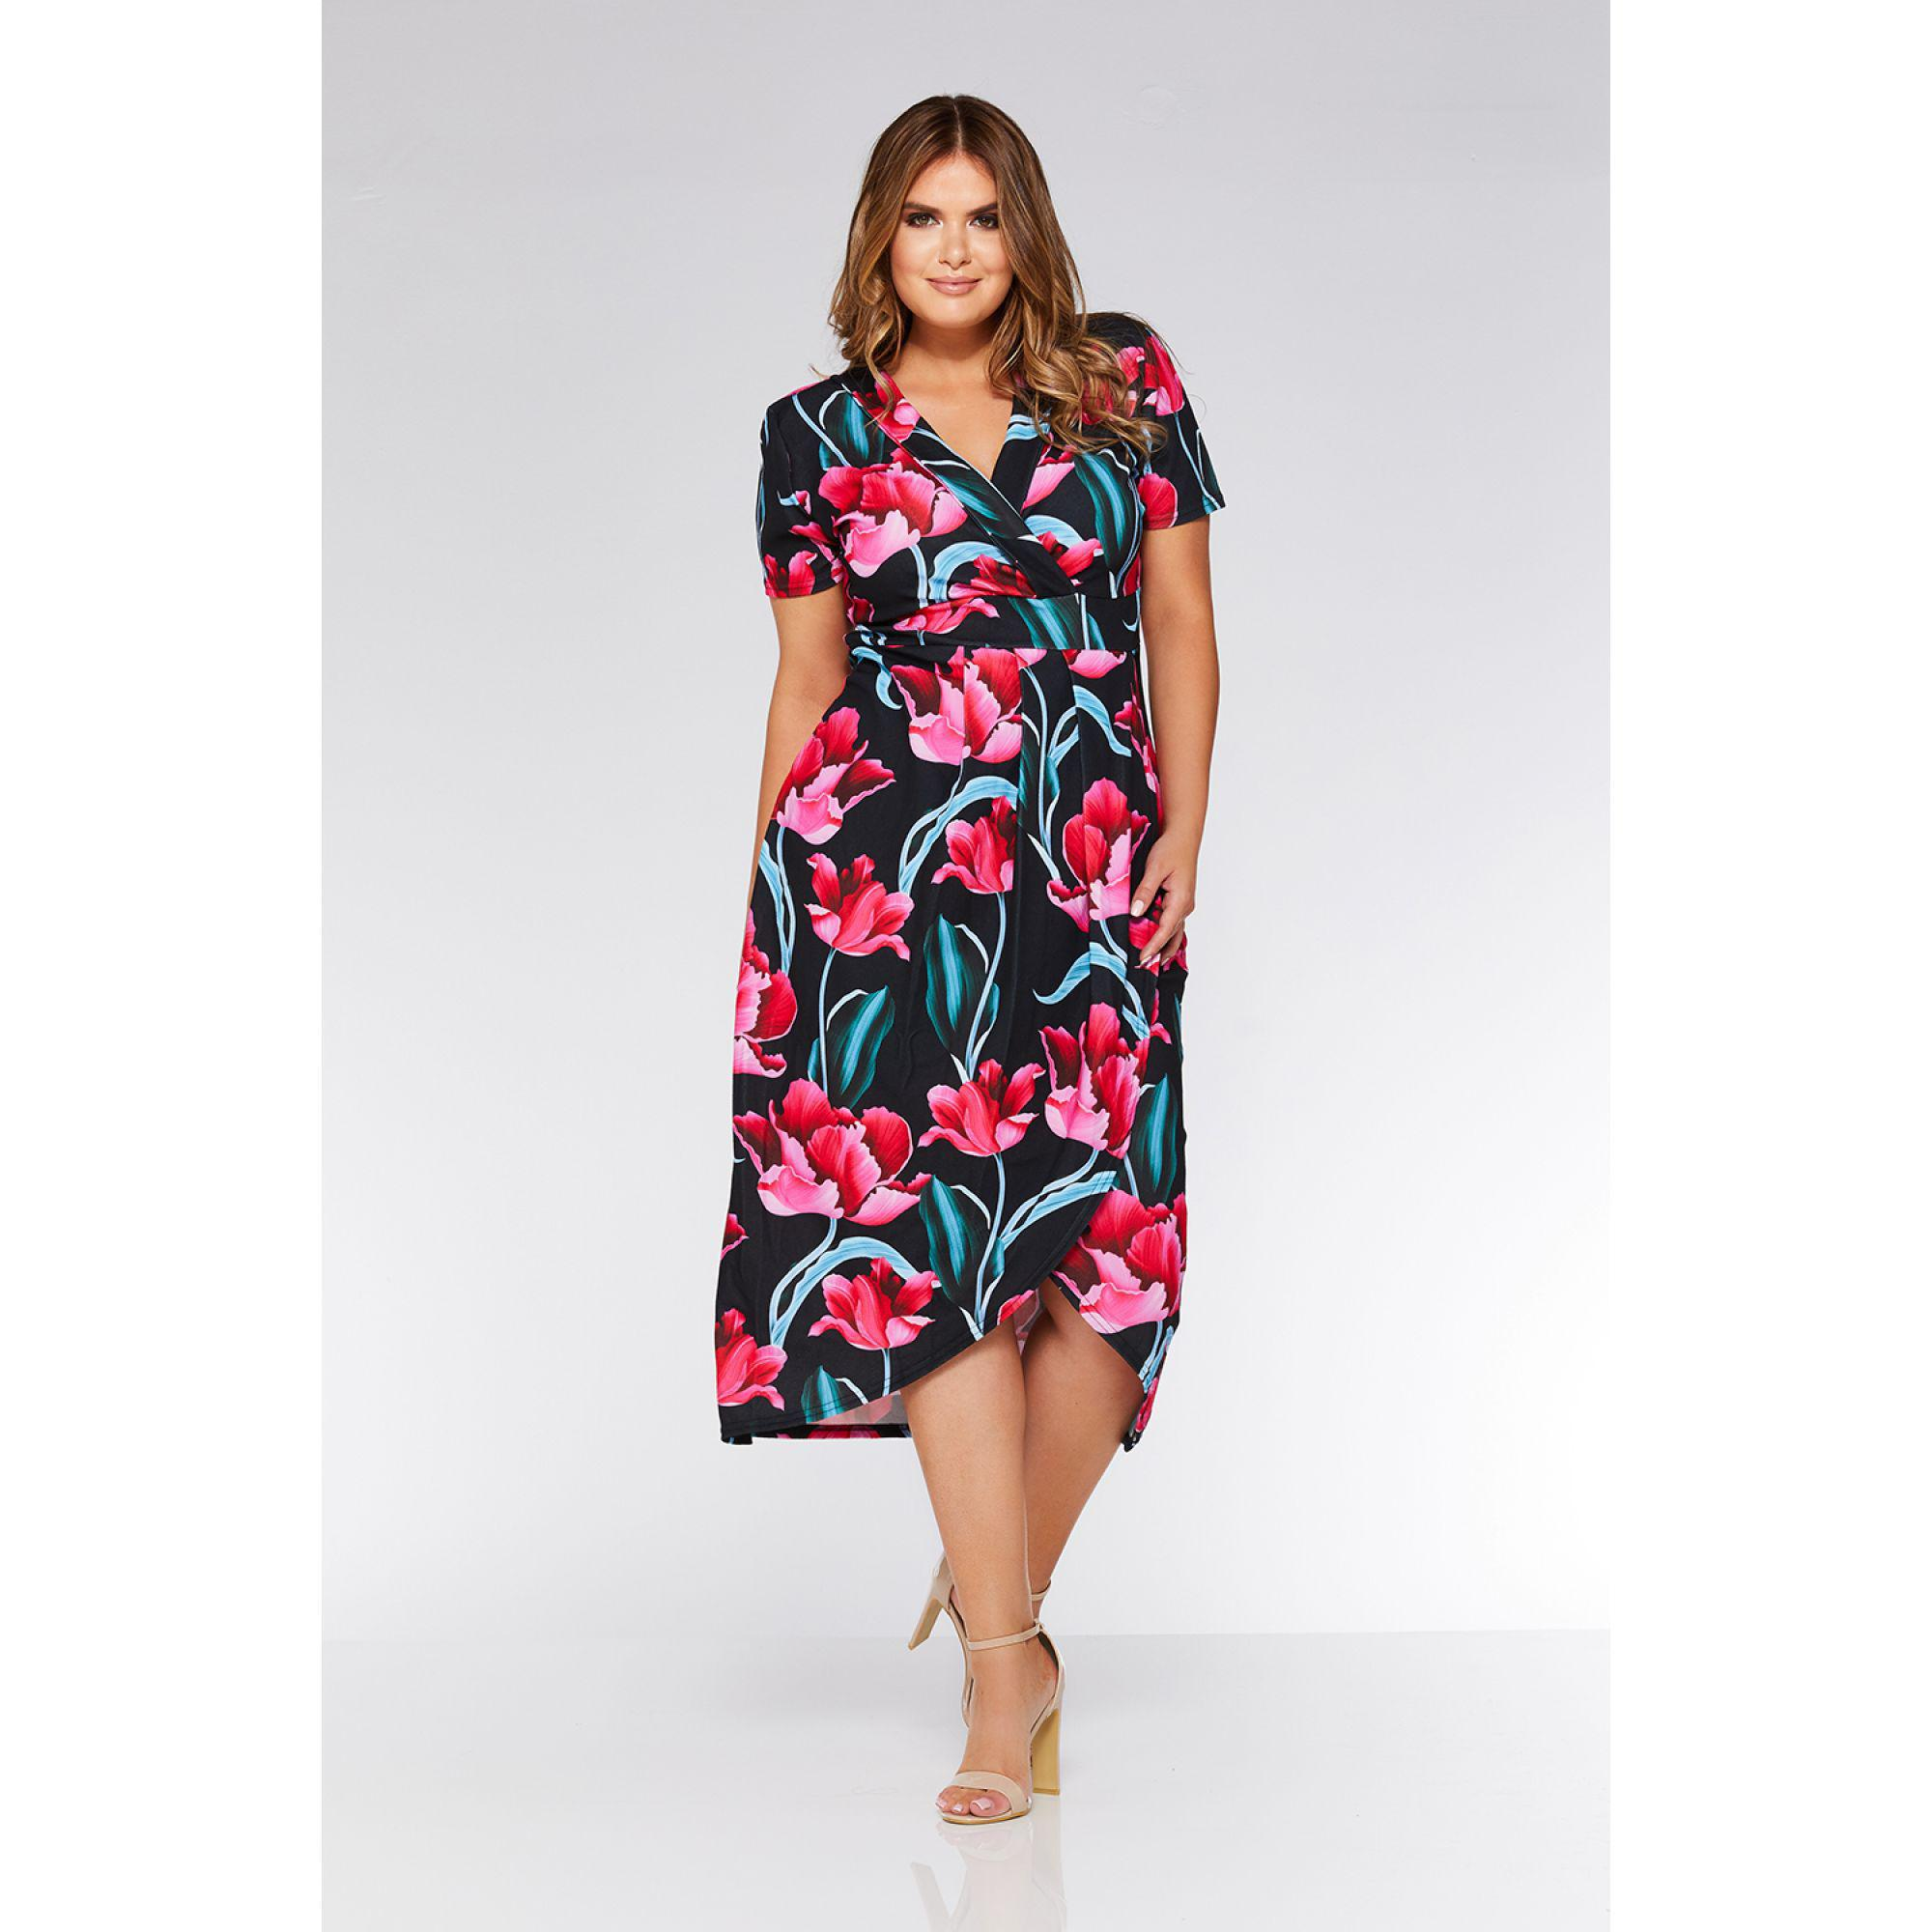 adaf6faa66 Quiz Black Flower Print Midi Dress - Gomes Weine AG